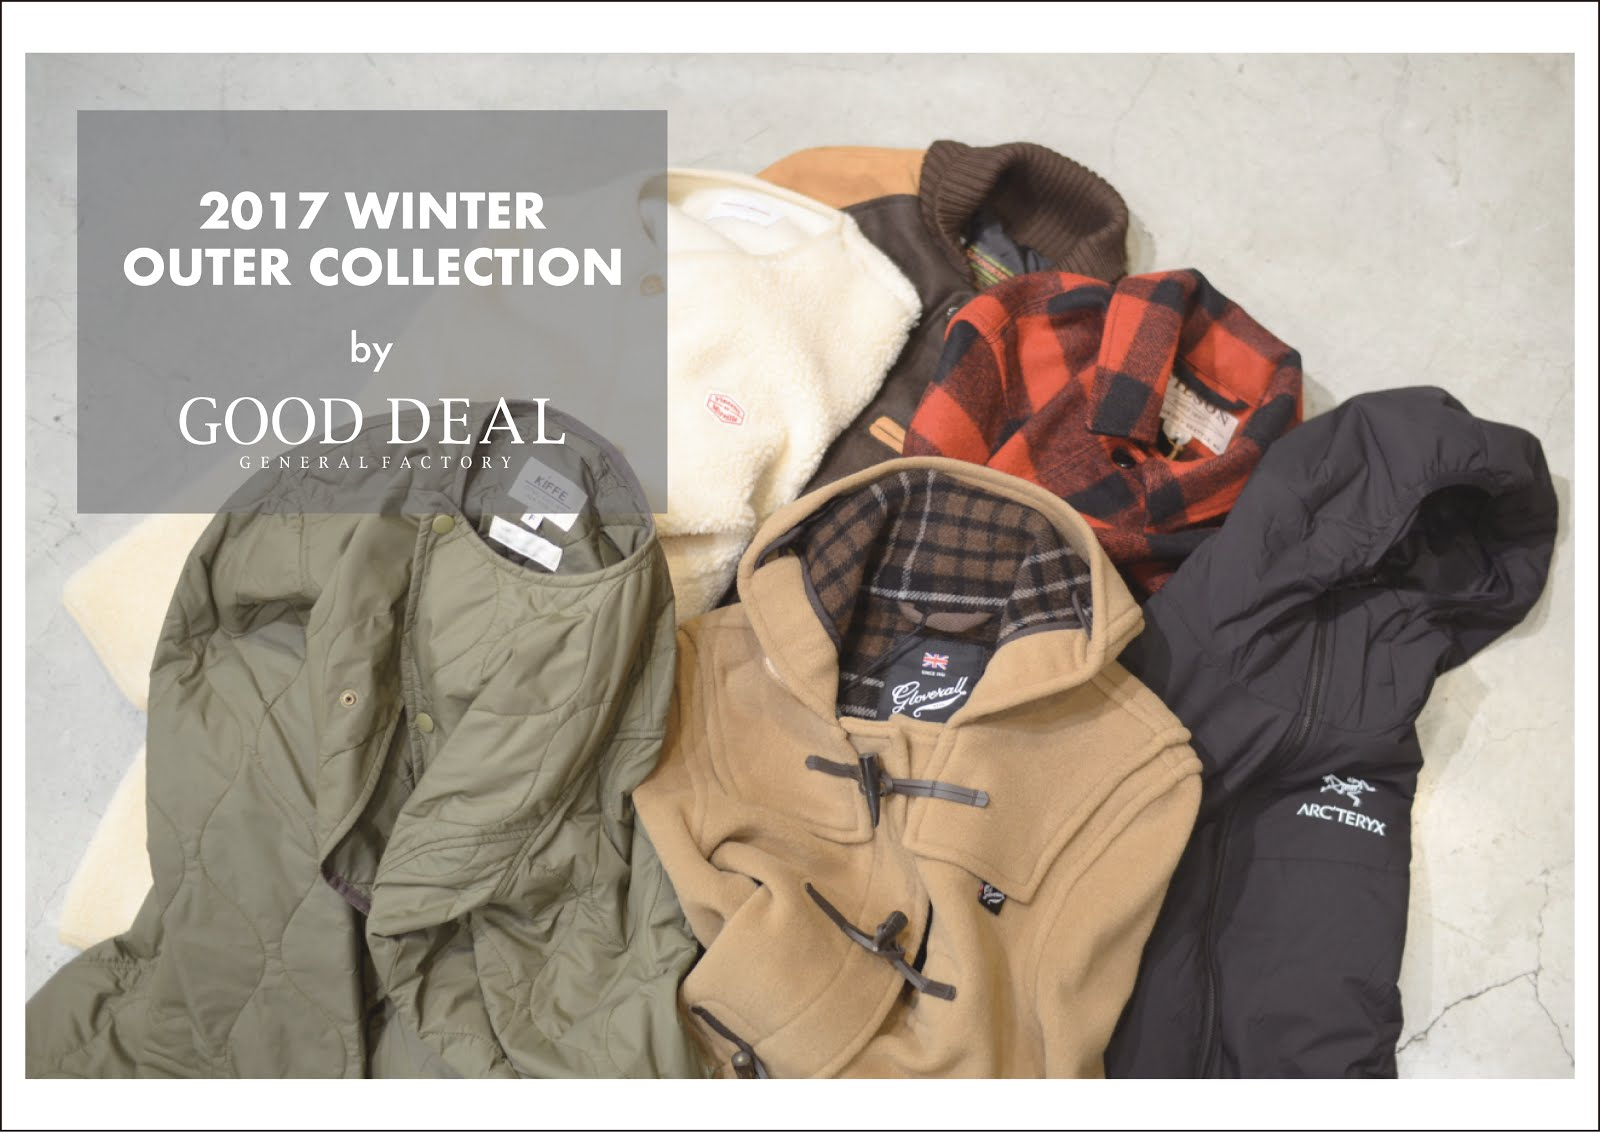 2017 WINTER OUTER COLLECTION